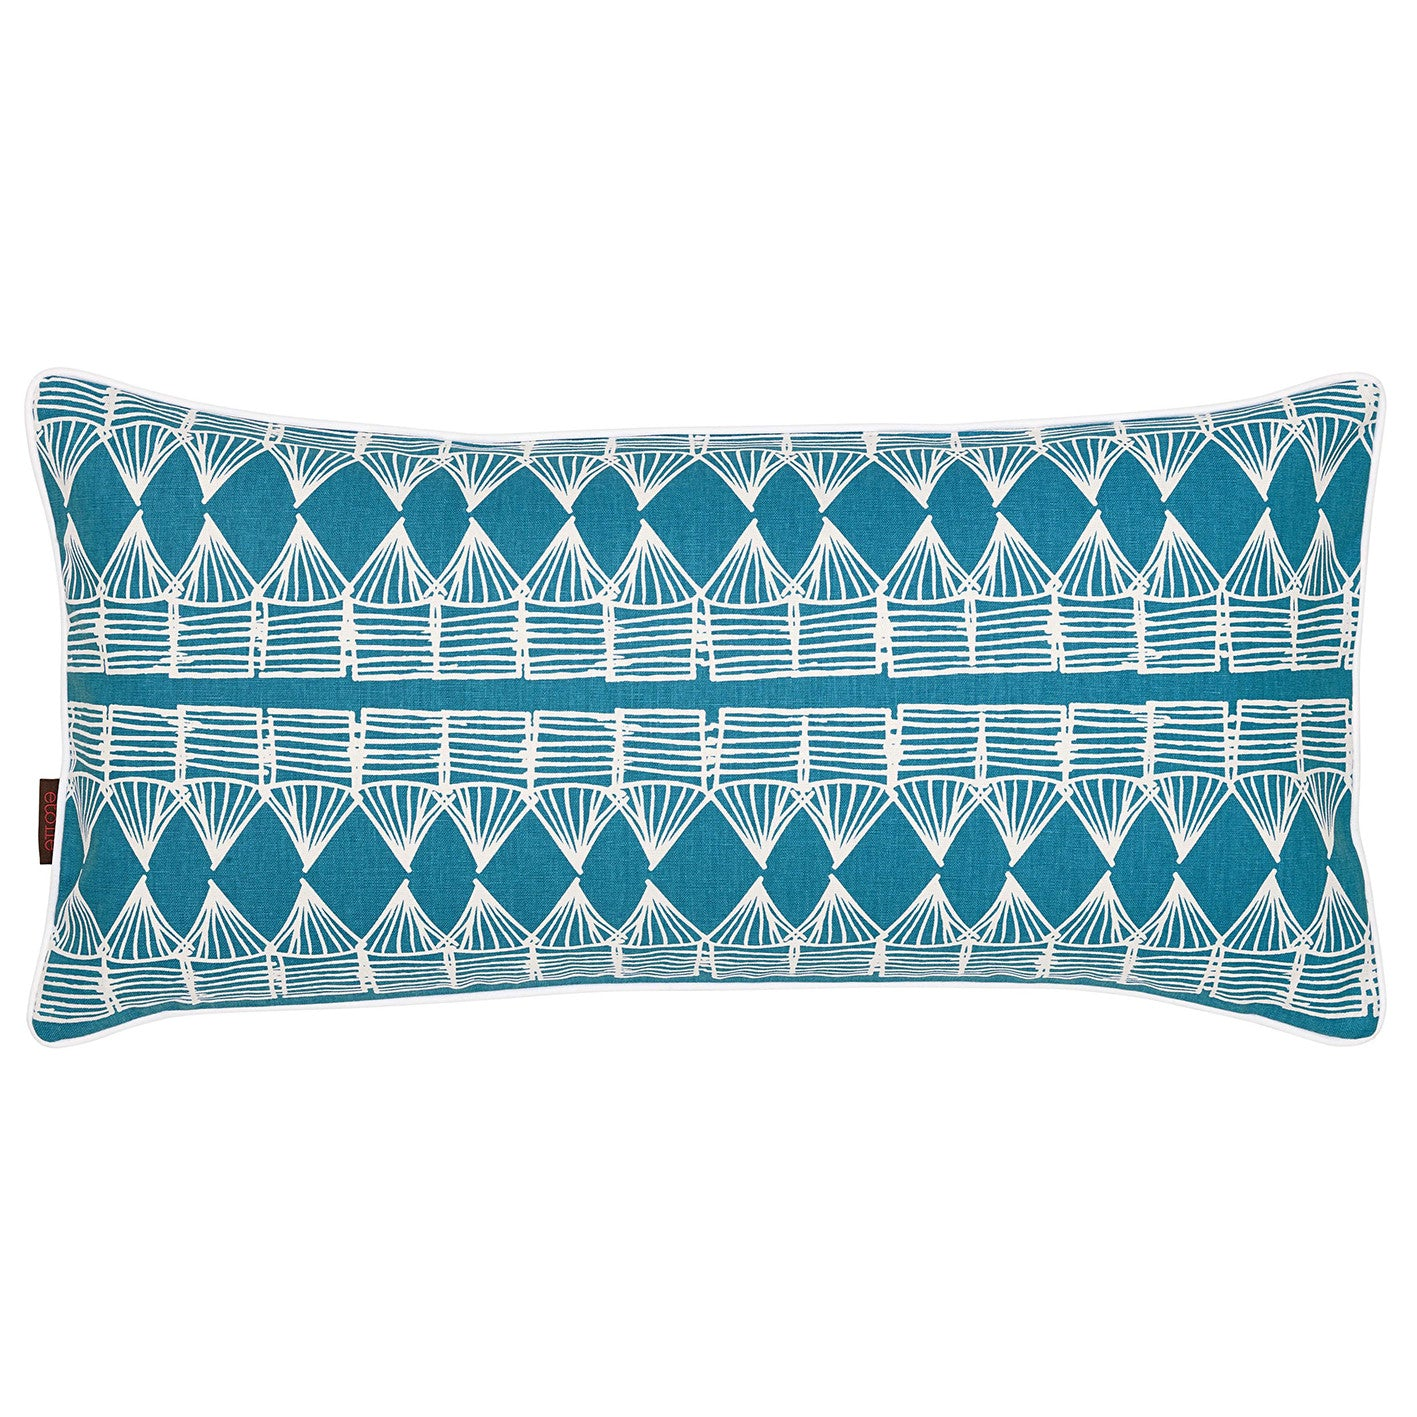 "Tiki Huts Tropical Pattern Rectangle Lumbar Throw Pillow in Linen in Bright Turquoise Blue 30x60cm 12x24"" Cushion ships from Canada worldwide including the USA"